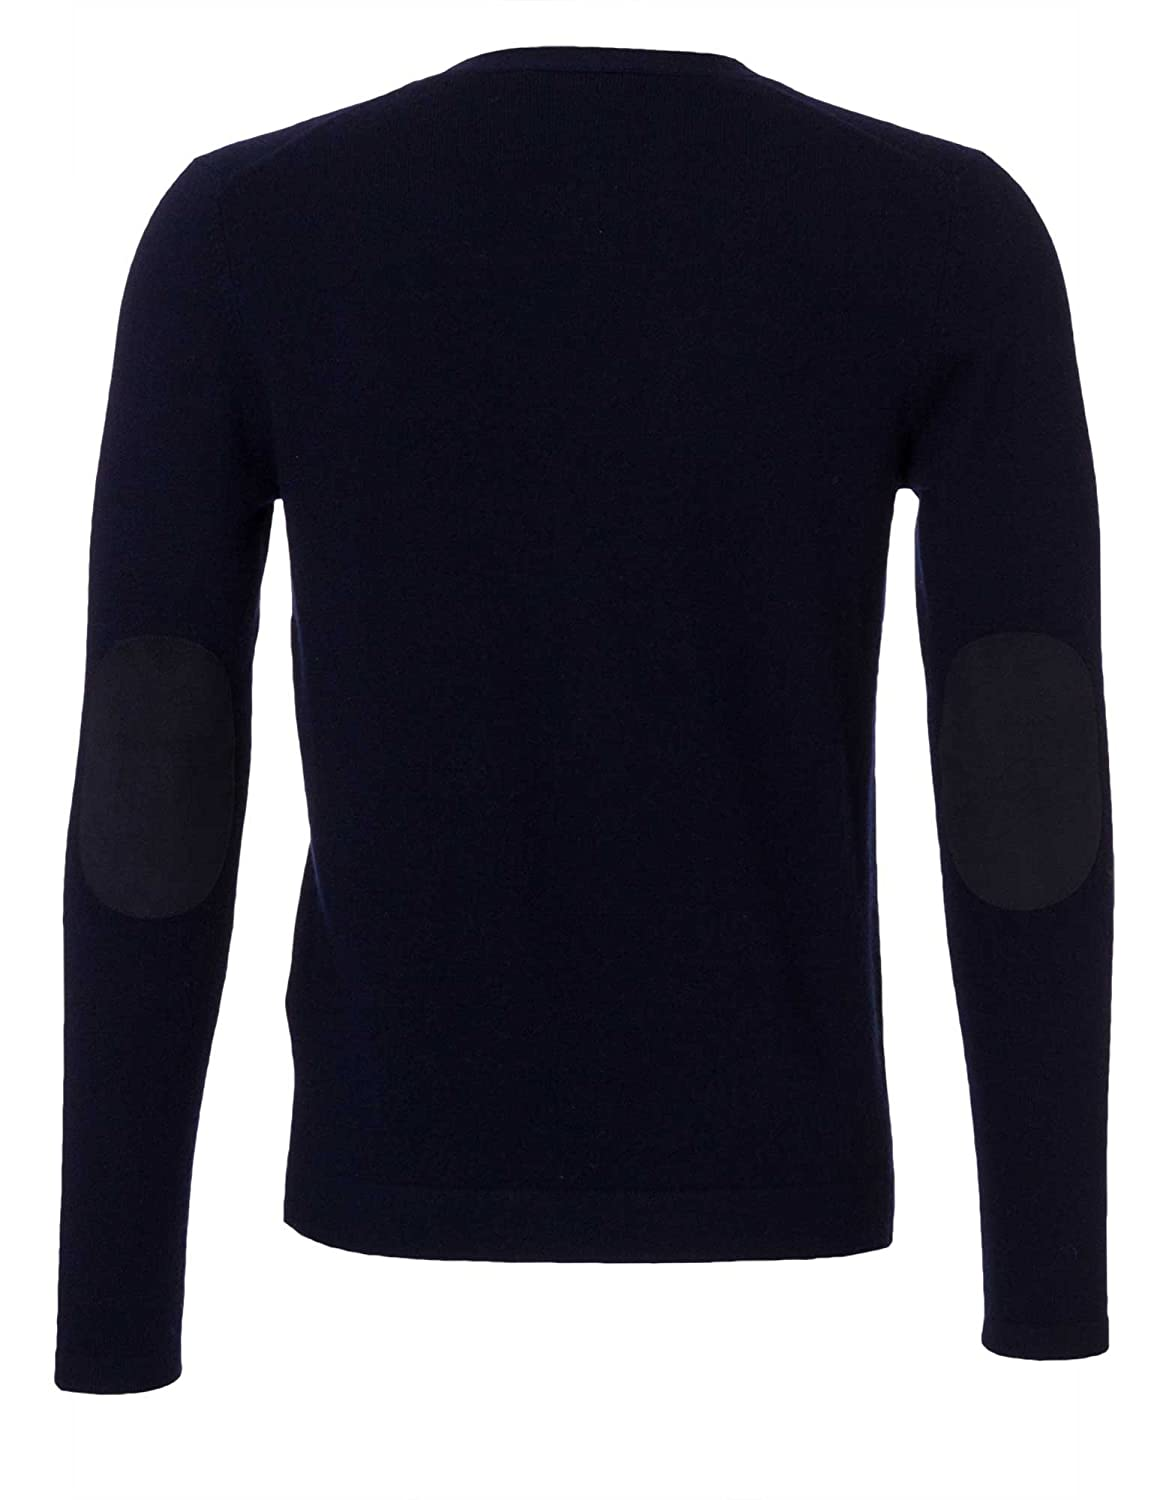 STRENESSE Men cardigan 100% cashmere winter collection